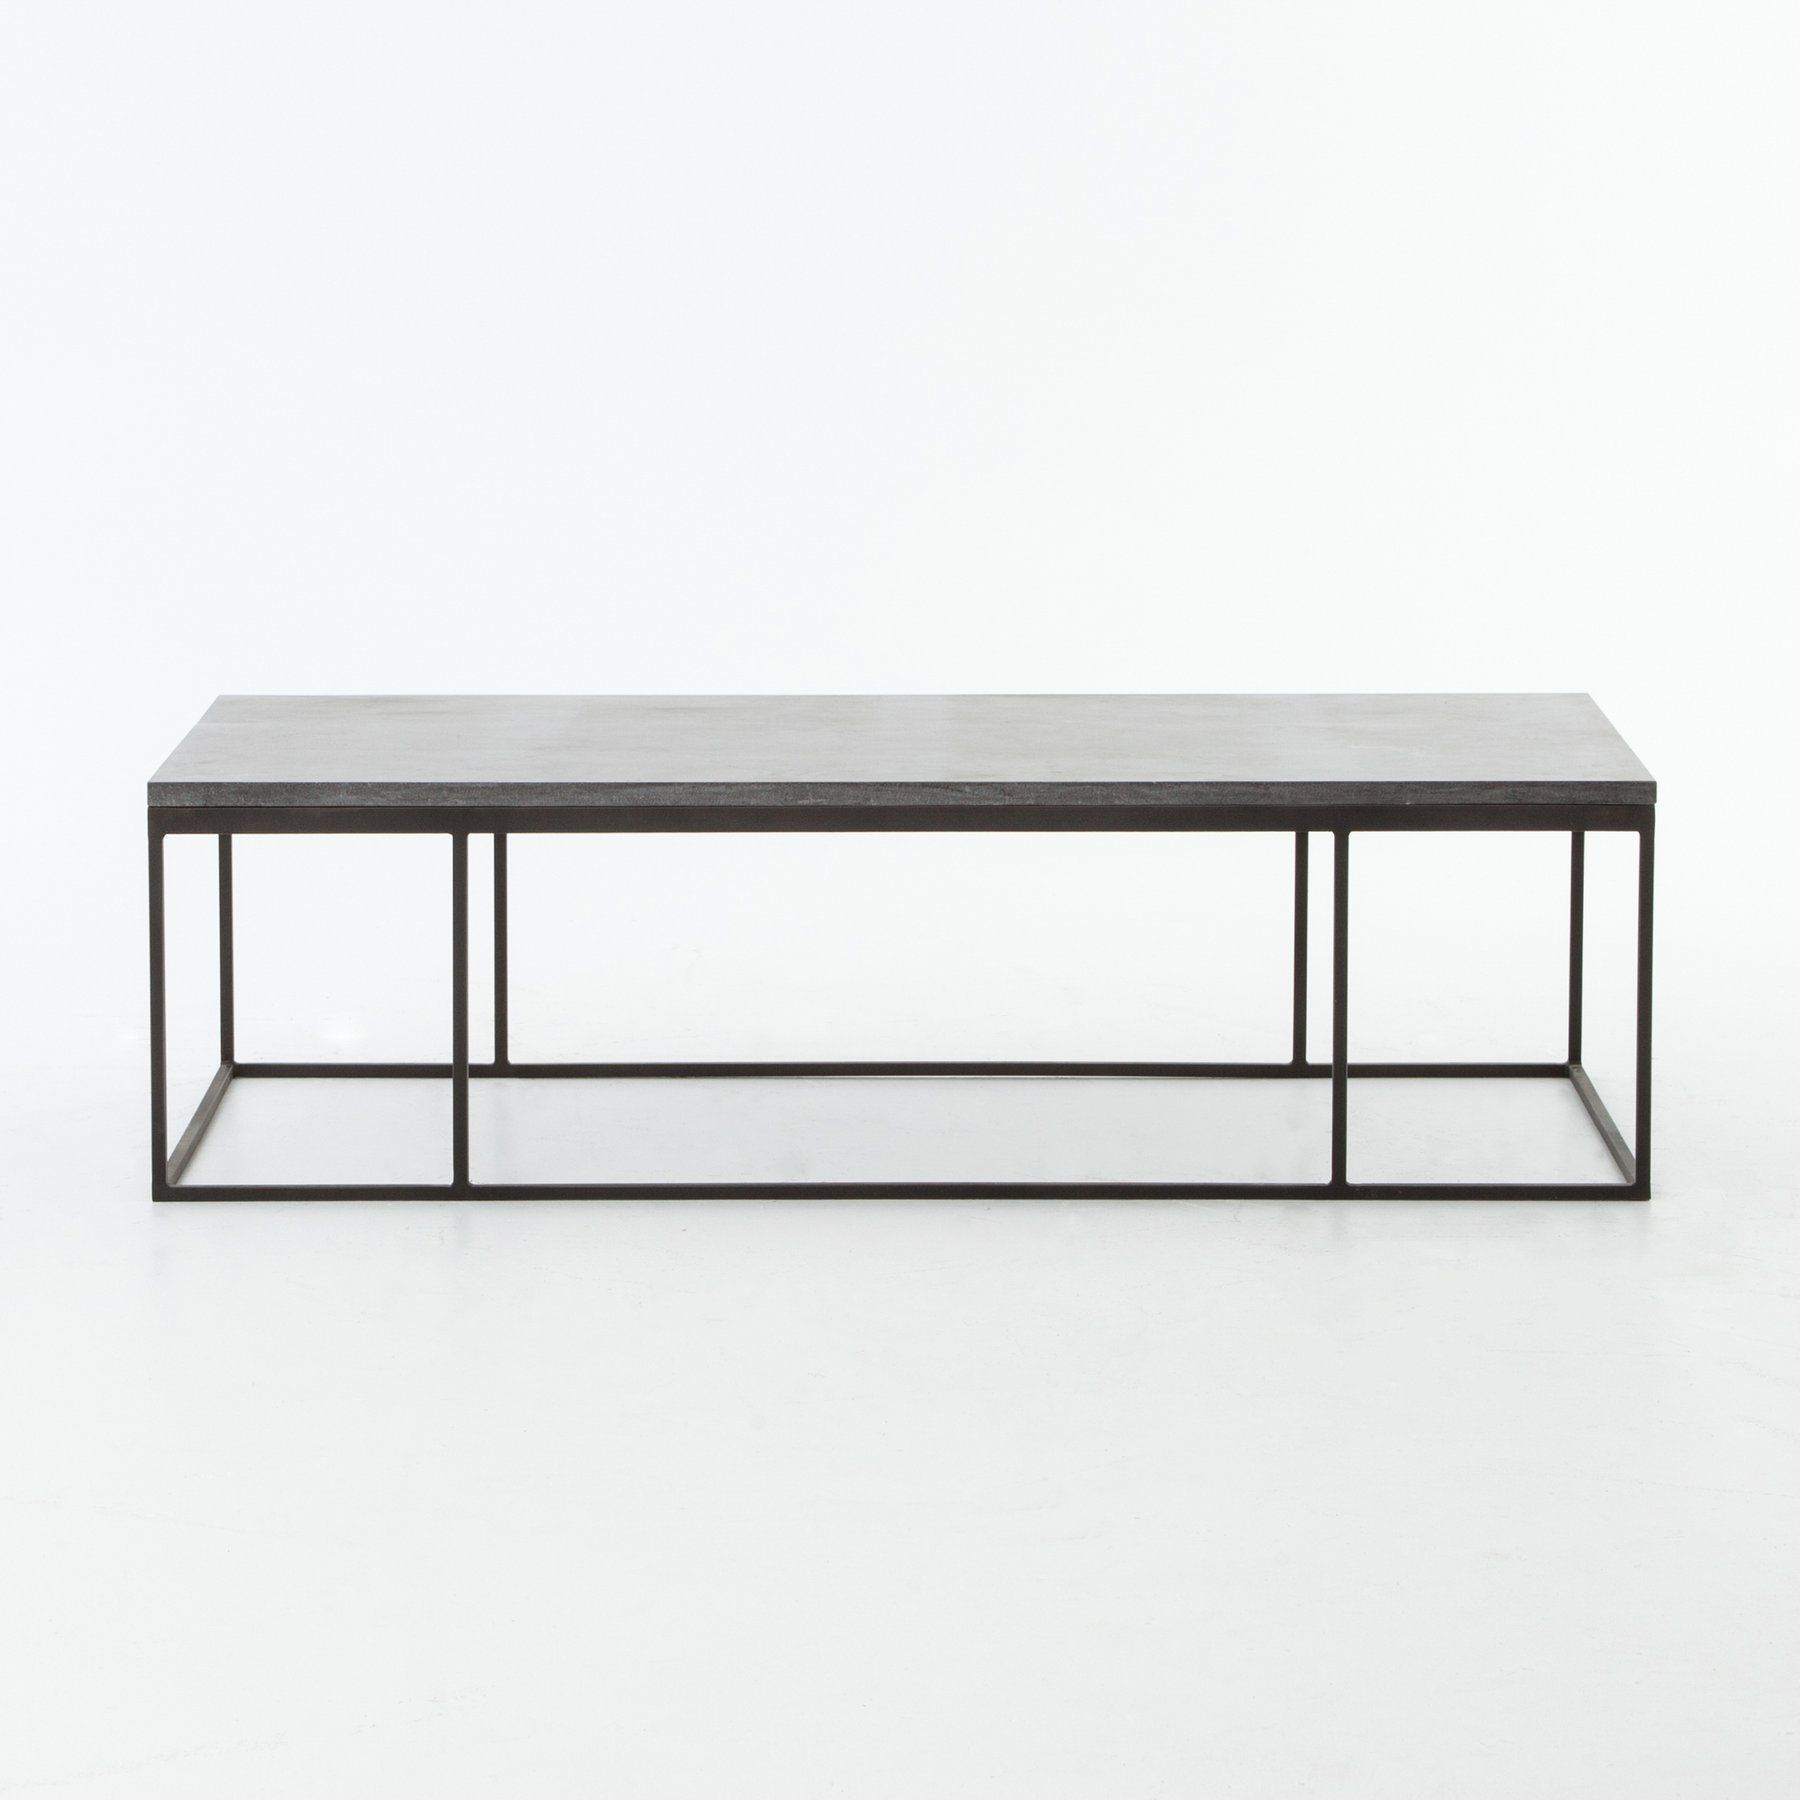 Silas Coffee Table Small Coffee Table Coffee Table Mid Century Modern Coffee Table [ 1800 x 1800 Pixel ]